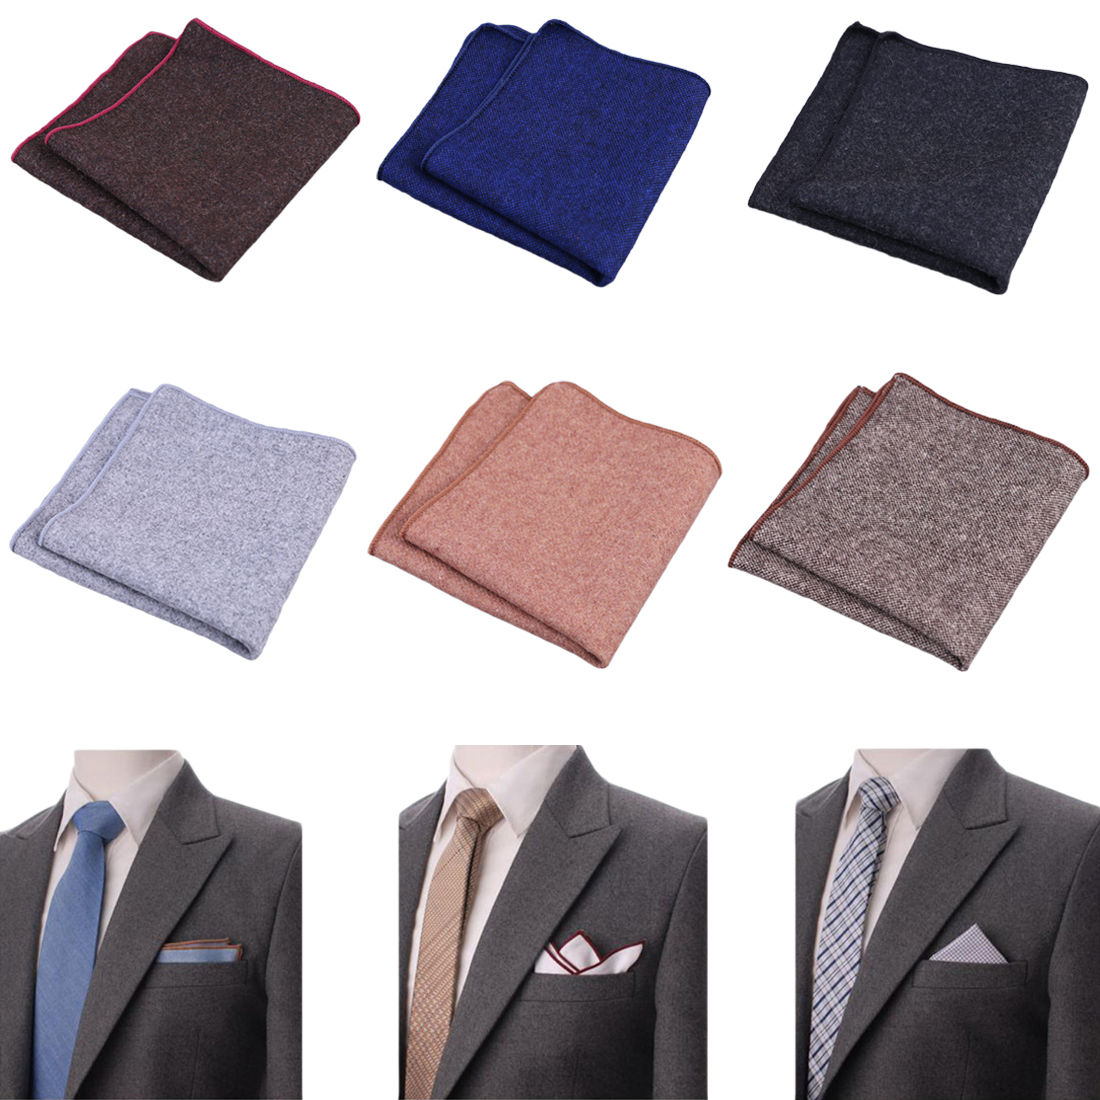 23*23cm High Quality Hankerchief Vintage Suits Solid Pocket Wool Hankies Men's Pocket Square Handkerchiefs Striped Solid Cotton